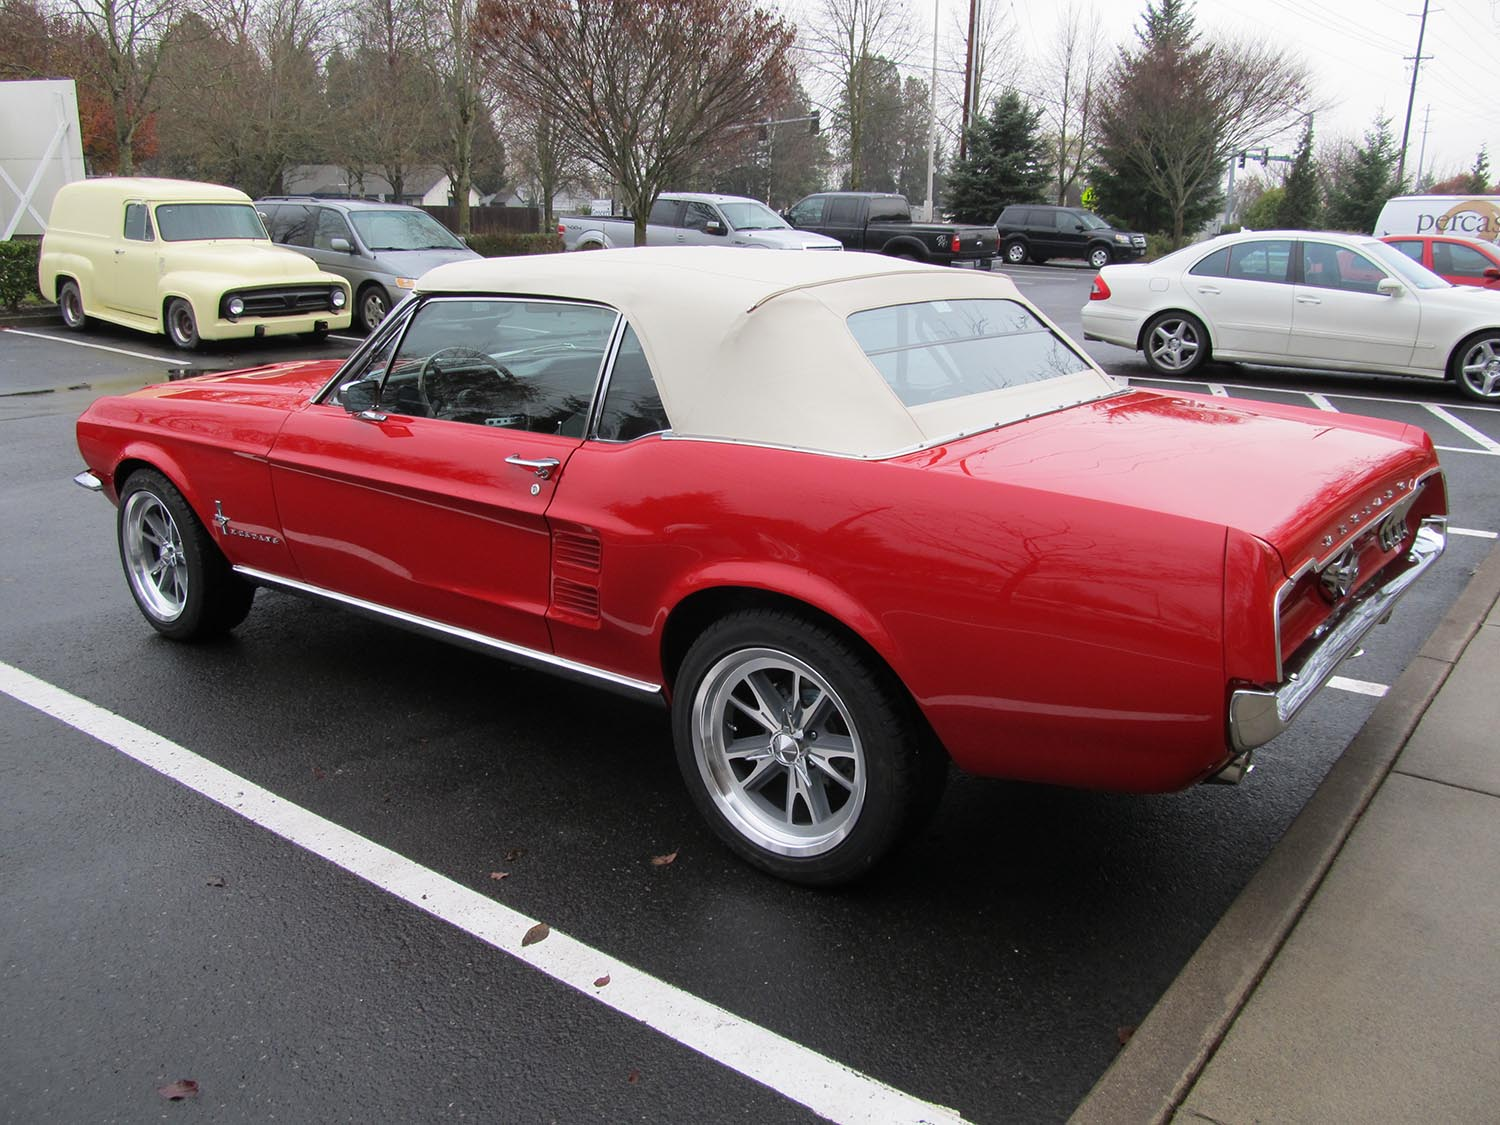 Ford Mustang Clipart moreover Chevelle Convertible Ls Tremec Speed Ac Frame Off Restoration Not Ss in addition Shelby Gt V furthermore  in addition Ford Mustang Door Data Plate. on 1967 red mustang convertible